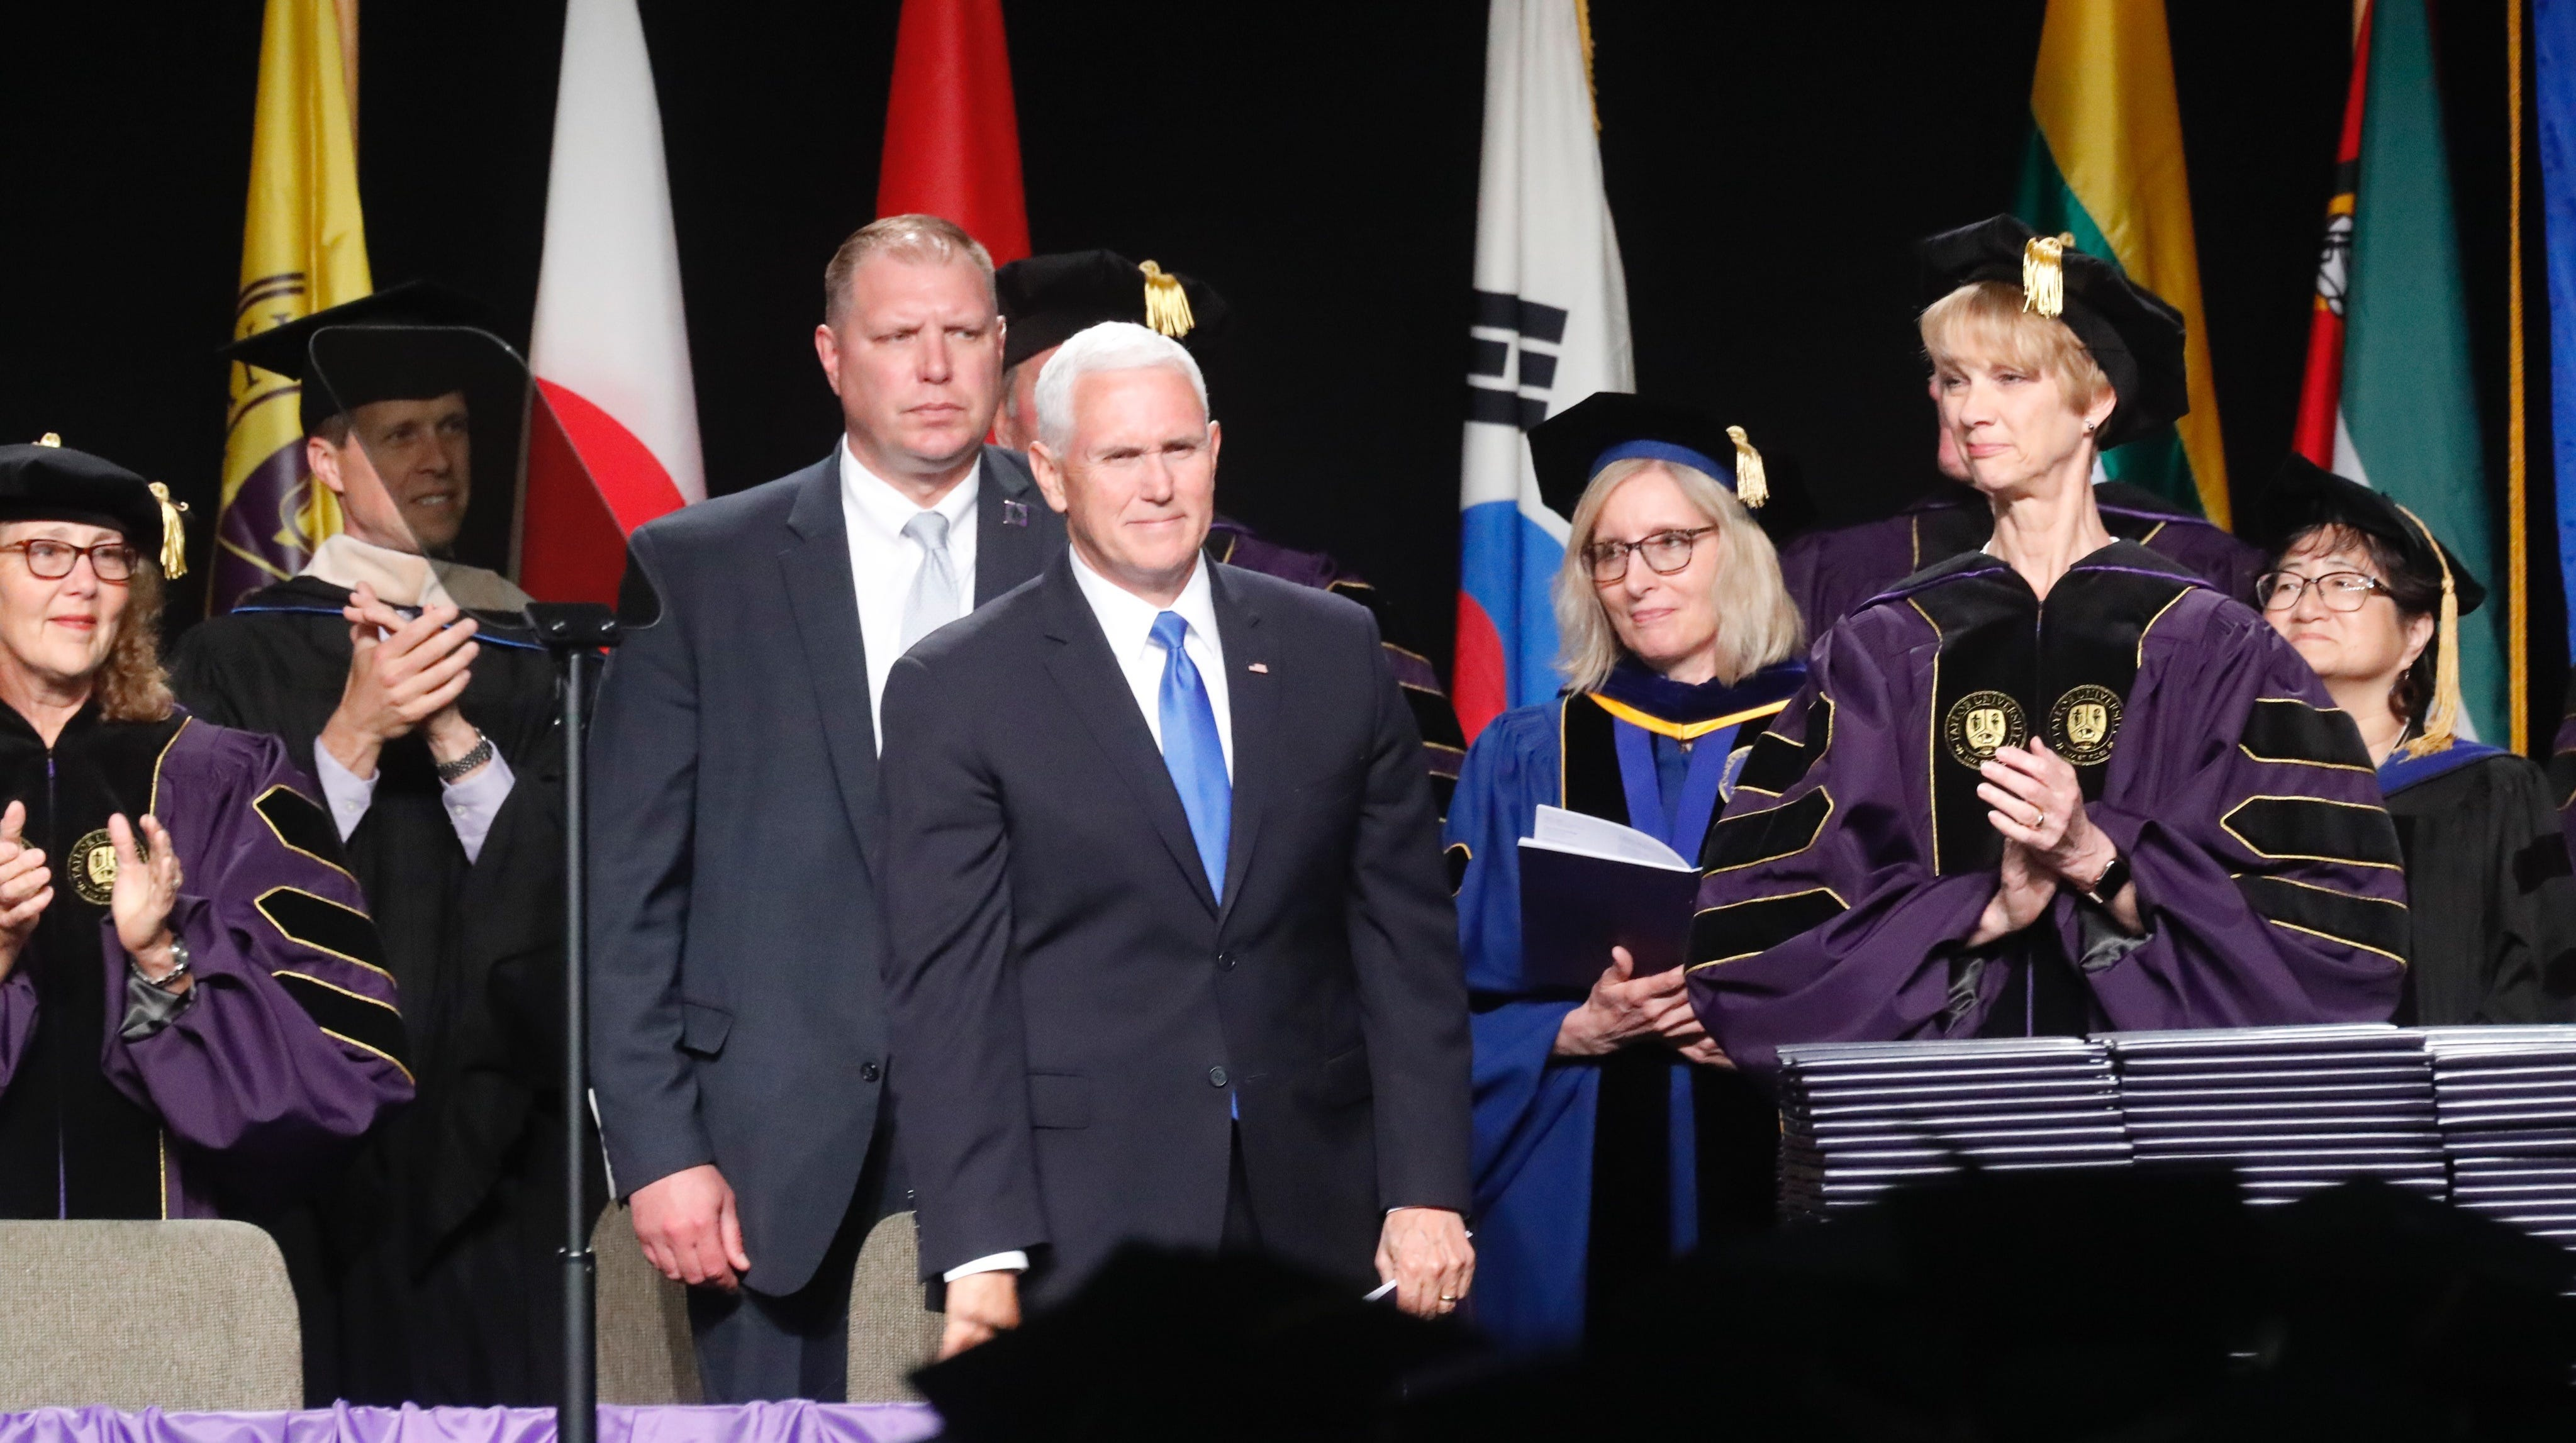 Vice President Mike Pence delivered a commencement address at Taylor University on Saturday, May 18, 2019.